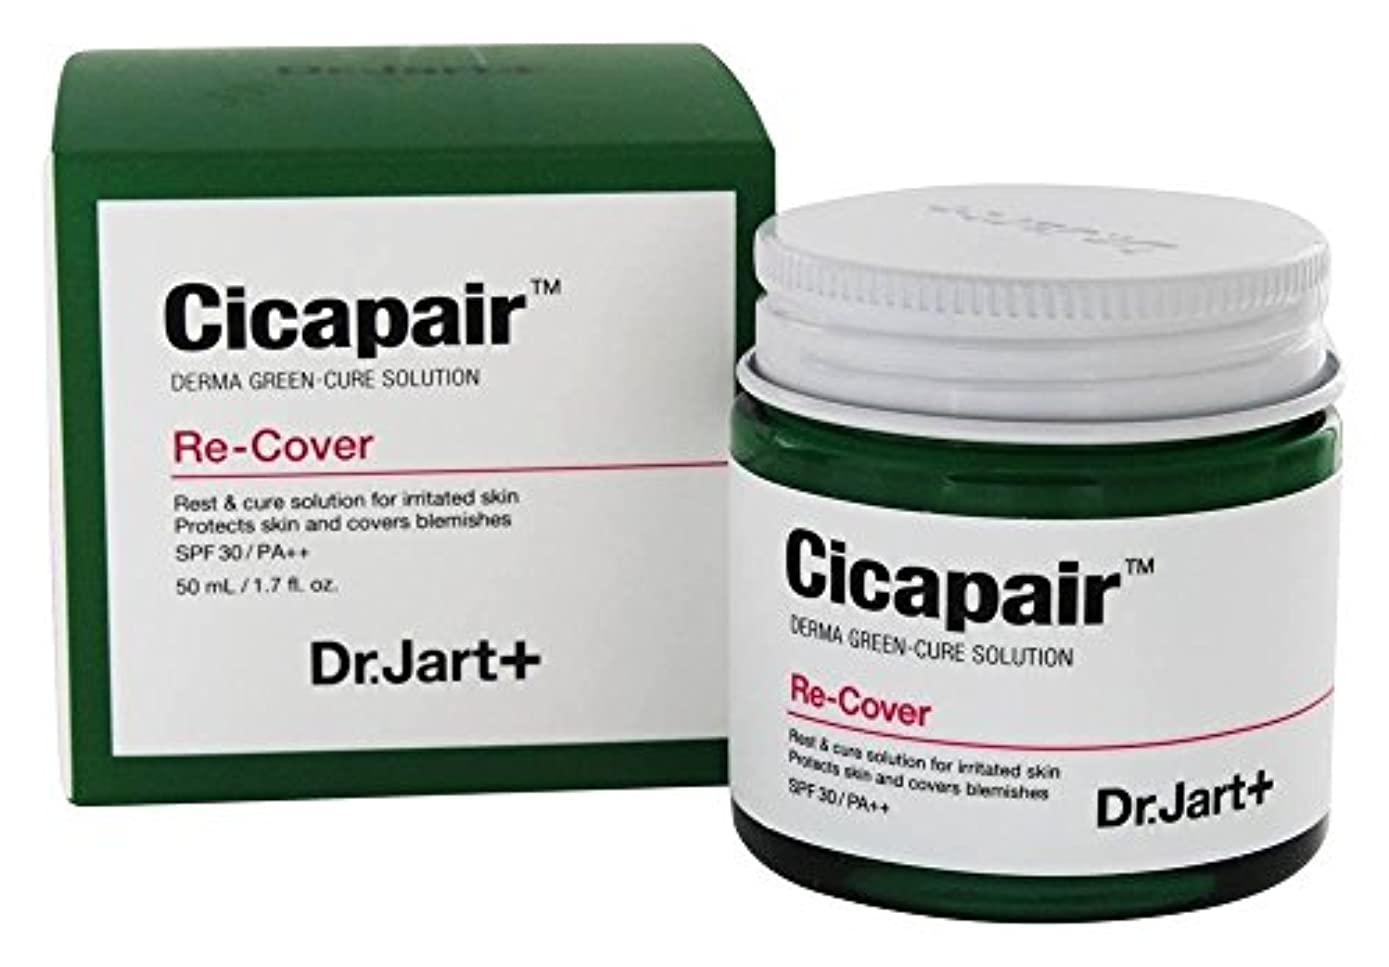 クリスチャン頼る外観Dr. Jart+ Cicapair Derma Green-Cure Solution Recover Cream 50ml [並行輸入品]